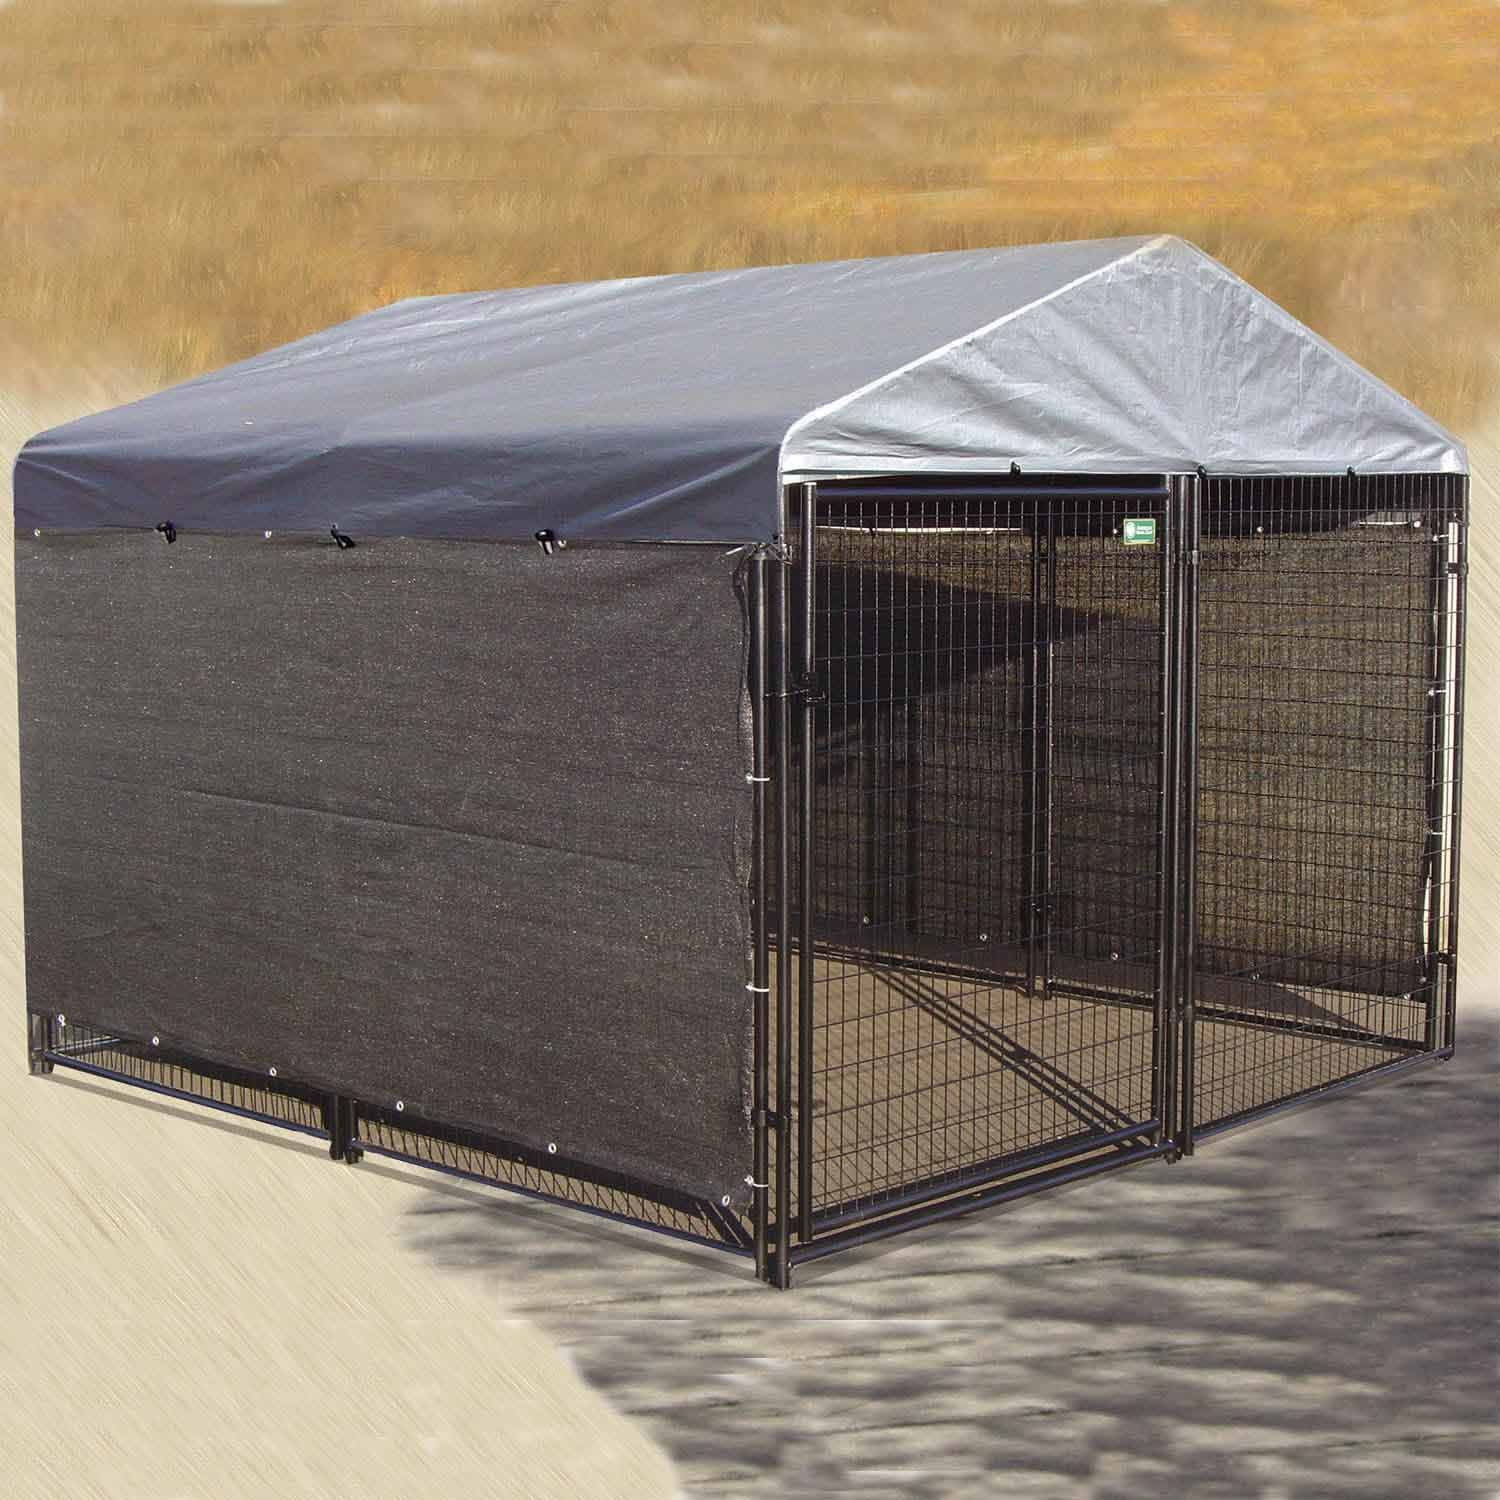 The Lucky Dog Heavy Duty Shade Cloth Helps Protect Your Pet From Wind Snow And Rain Heavy Duty Construction With Br Dog Kennel Cover Outside Dogs Dog Kennel